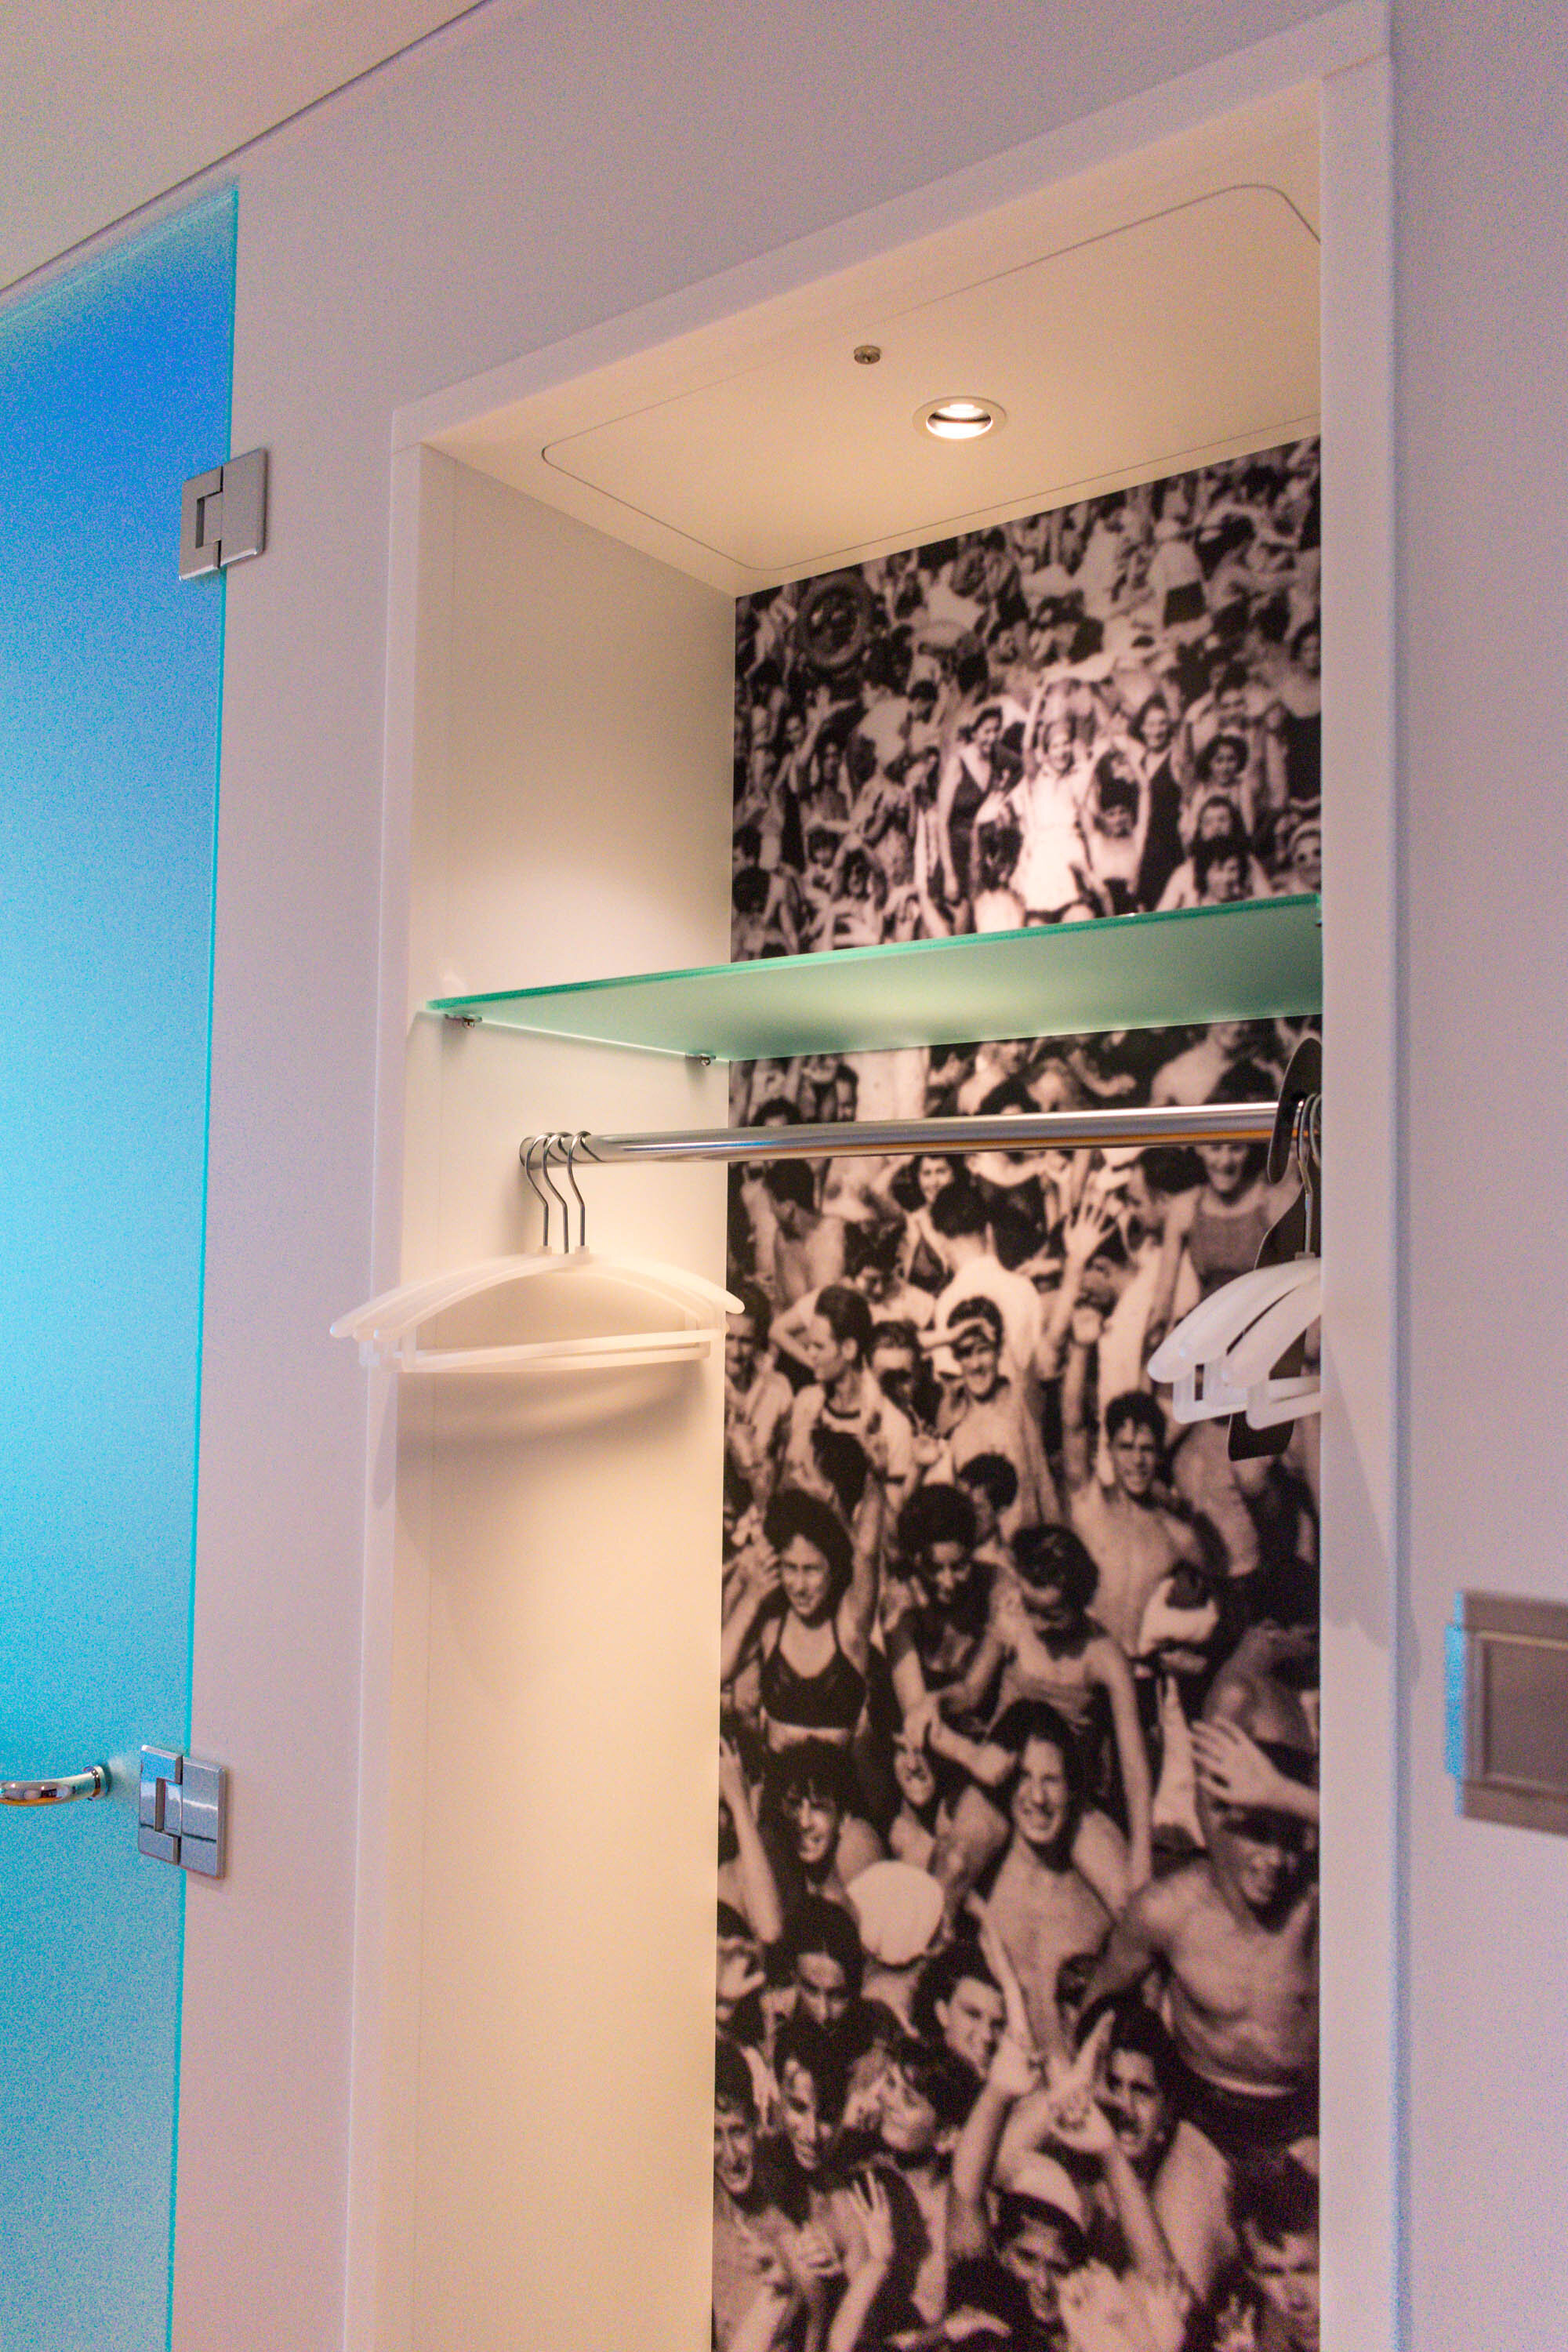 Affordable Luxury At The Citizenm In Boston Small Space